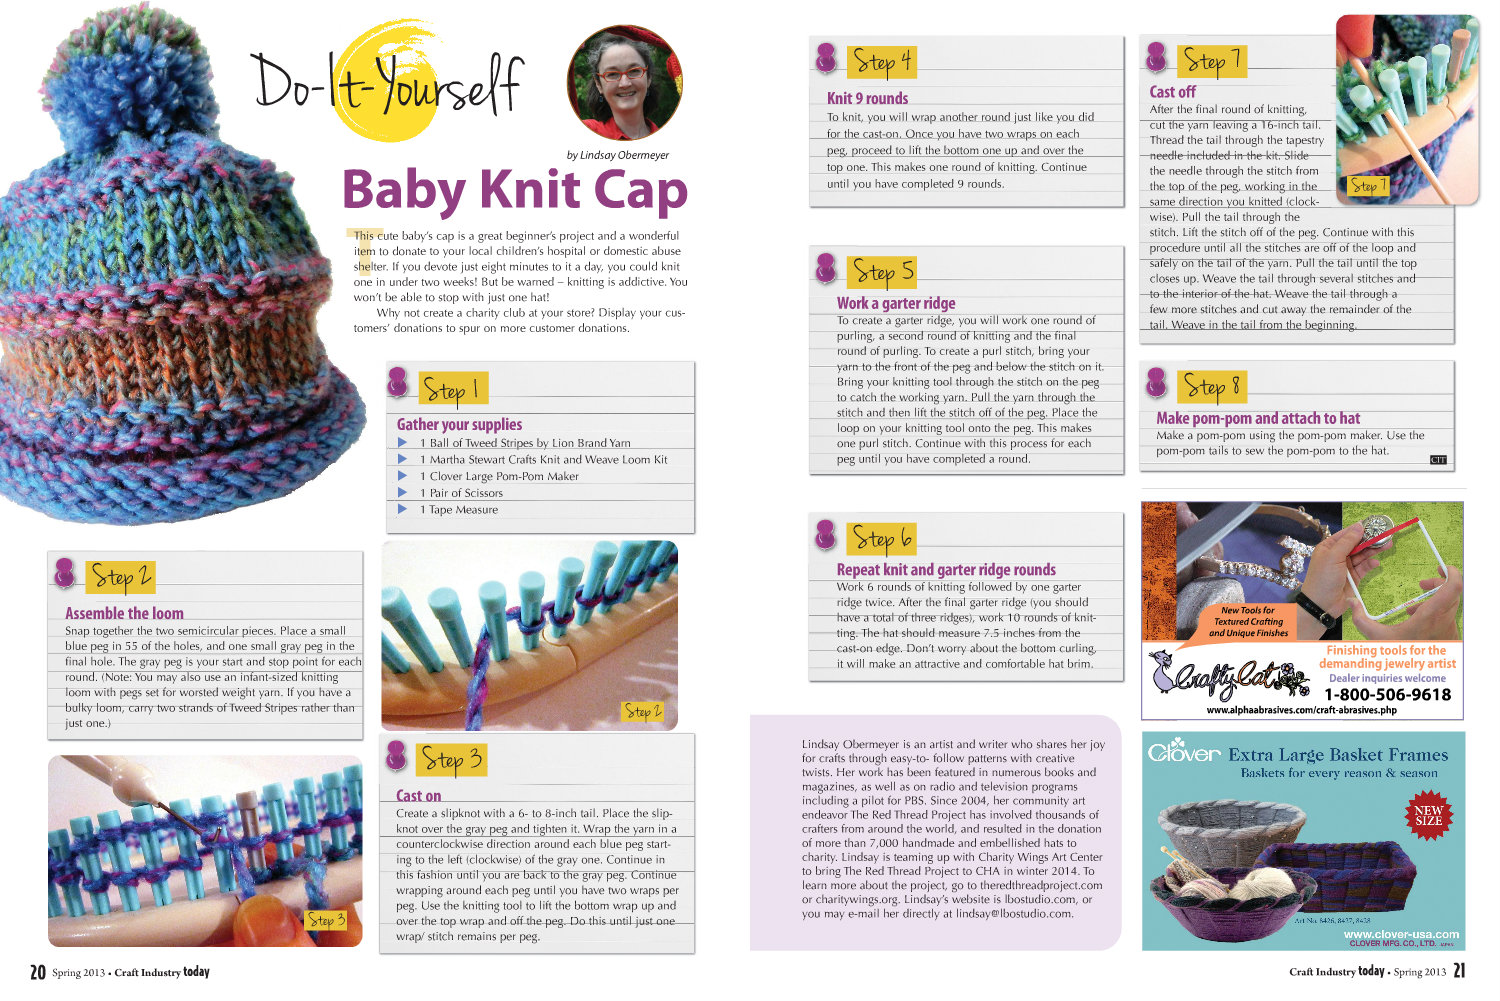 Free pattern loom knit babys cap serendipity 2013 lindsay obermeyer do it yourself from craft industry today solutioingenieria Gallery